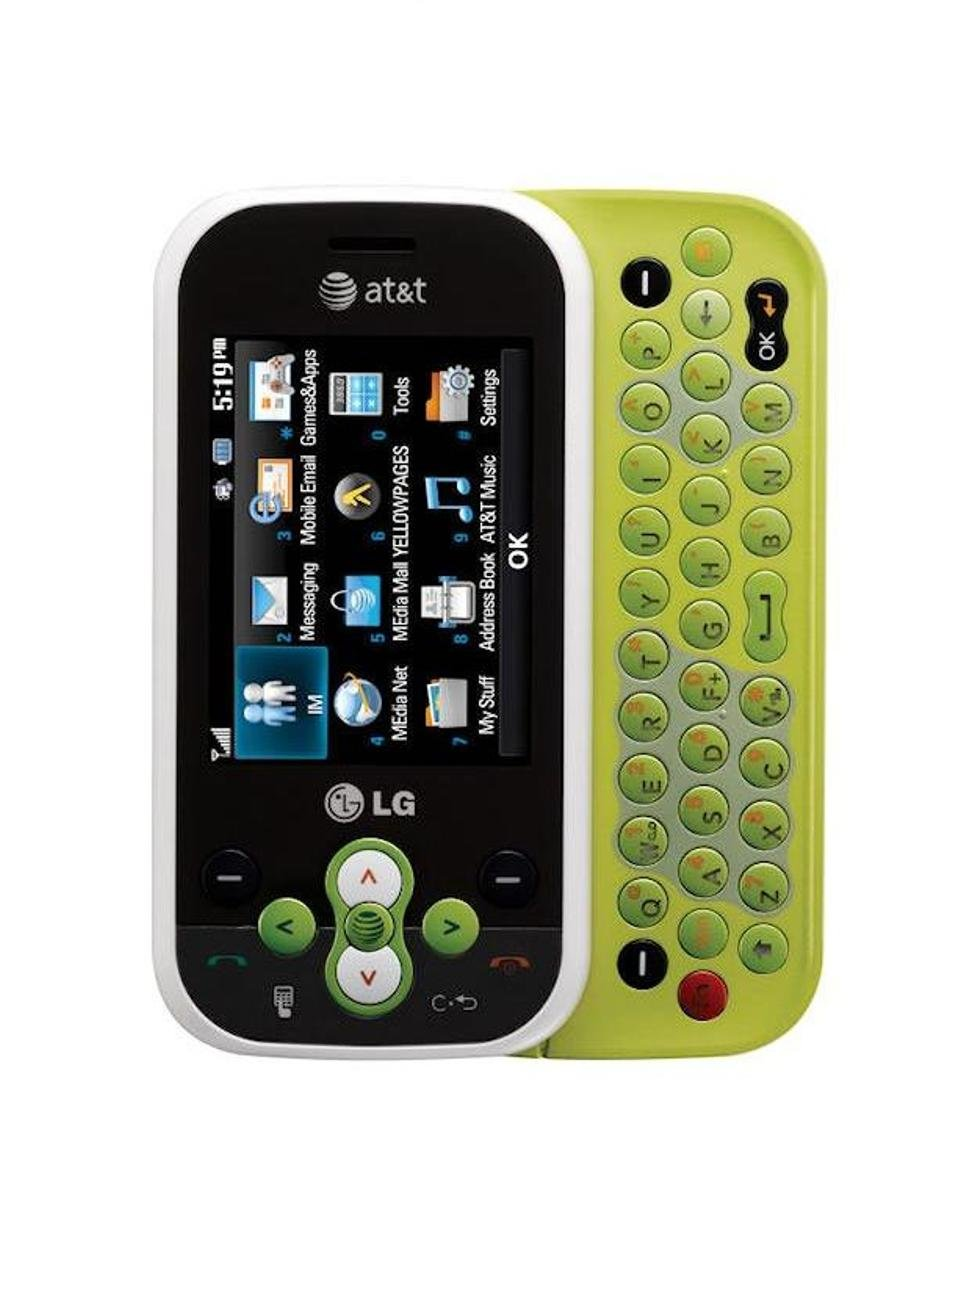 LG-GT365-Neon-Unlocked-Phone-with-2-MP-Camera-Bluetooth-MP3-and-QWERTY-Keyboard-US-Warranty-White-Green